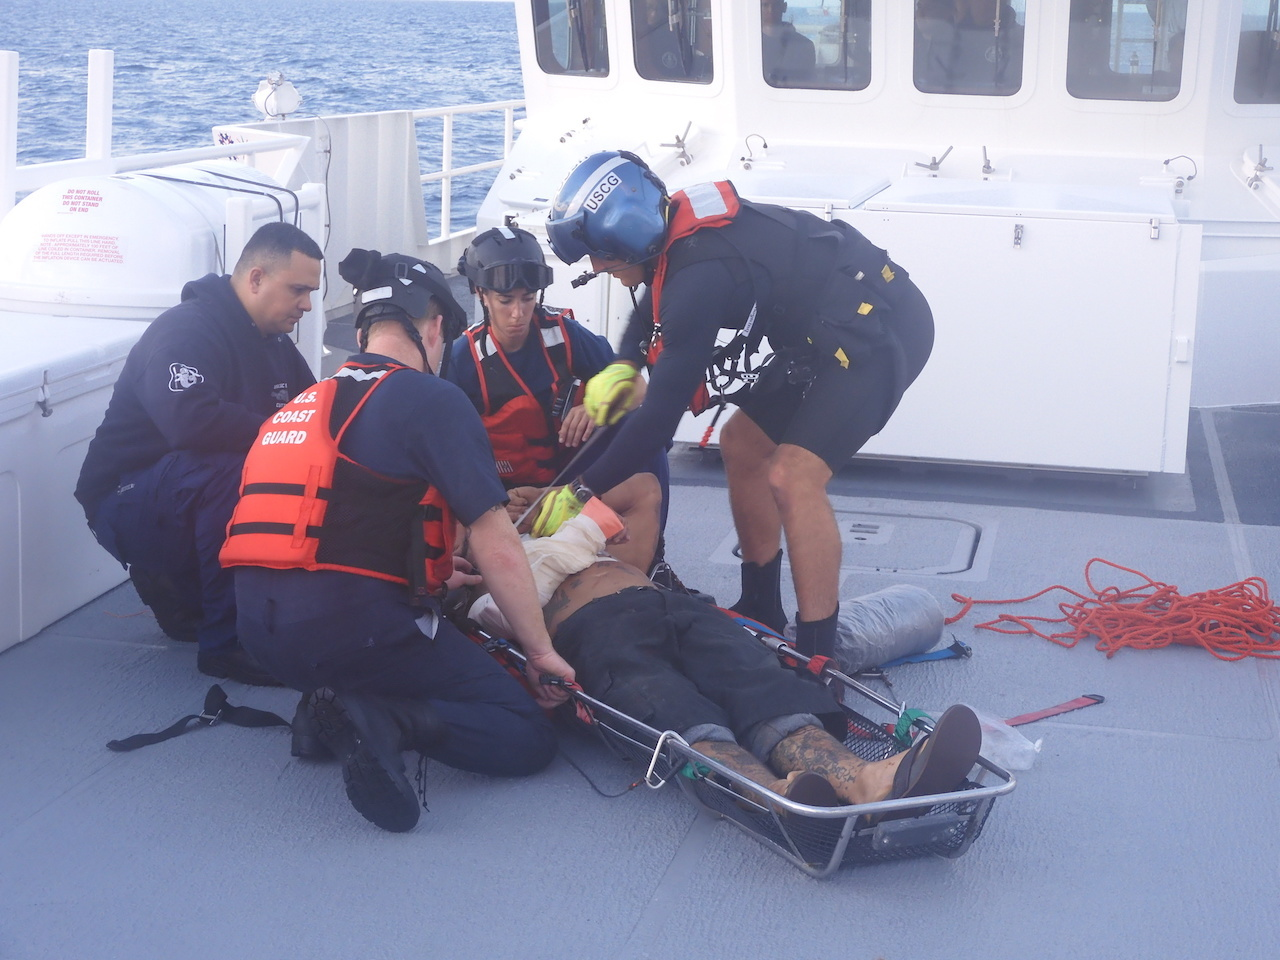 PHOTO RELEASE: Coast Guard medevacs 2 after boat collision 35 miles northwest of Dry Tortugas